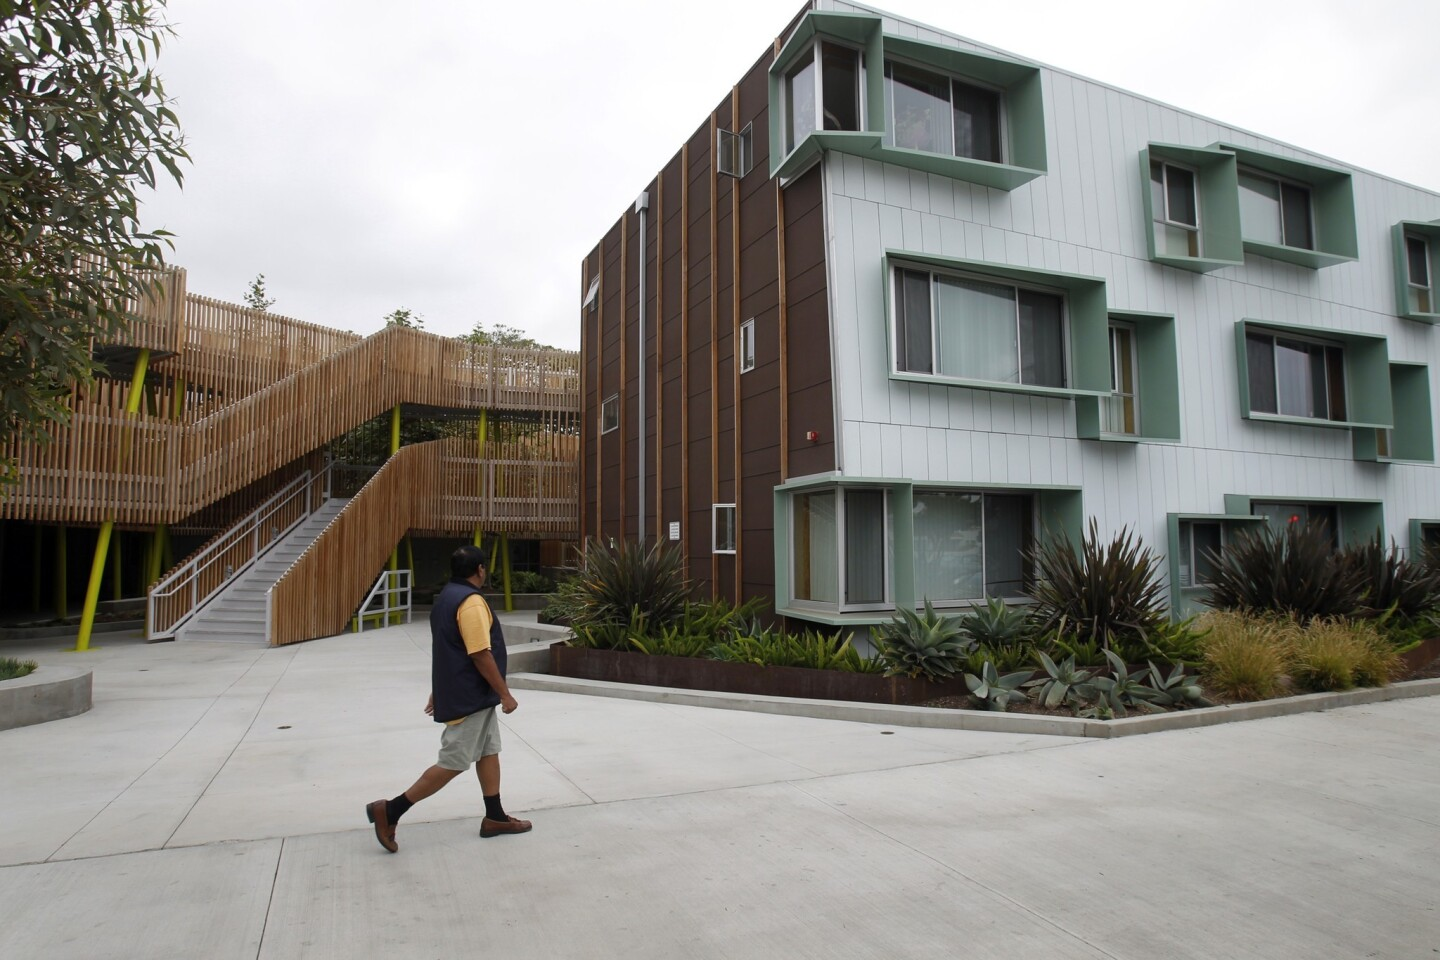 When creating this building, one of the goals of the Community Corp. of Santa Monica was to provide housing that both blends in with the neighborhood, but yet stands out in a beautiful way.